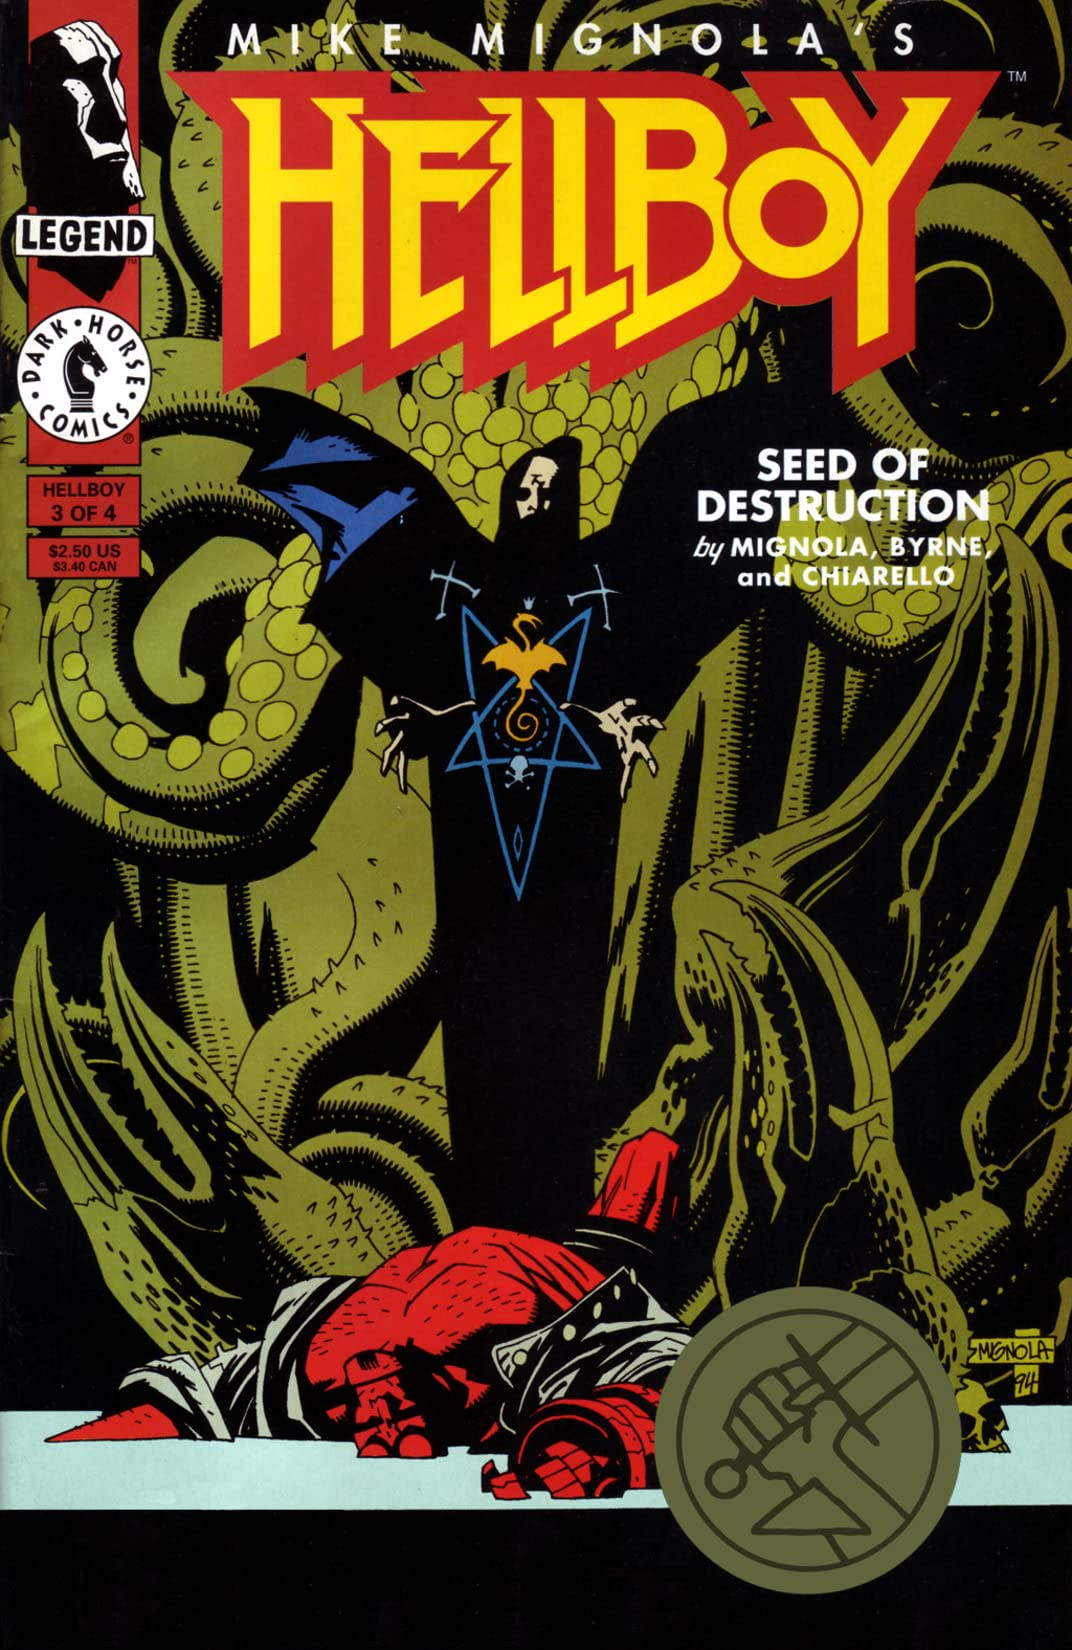 Hellboy: Seed of Destruction #3